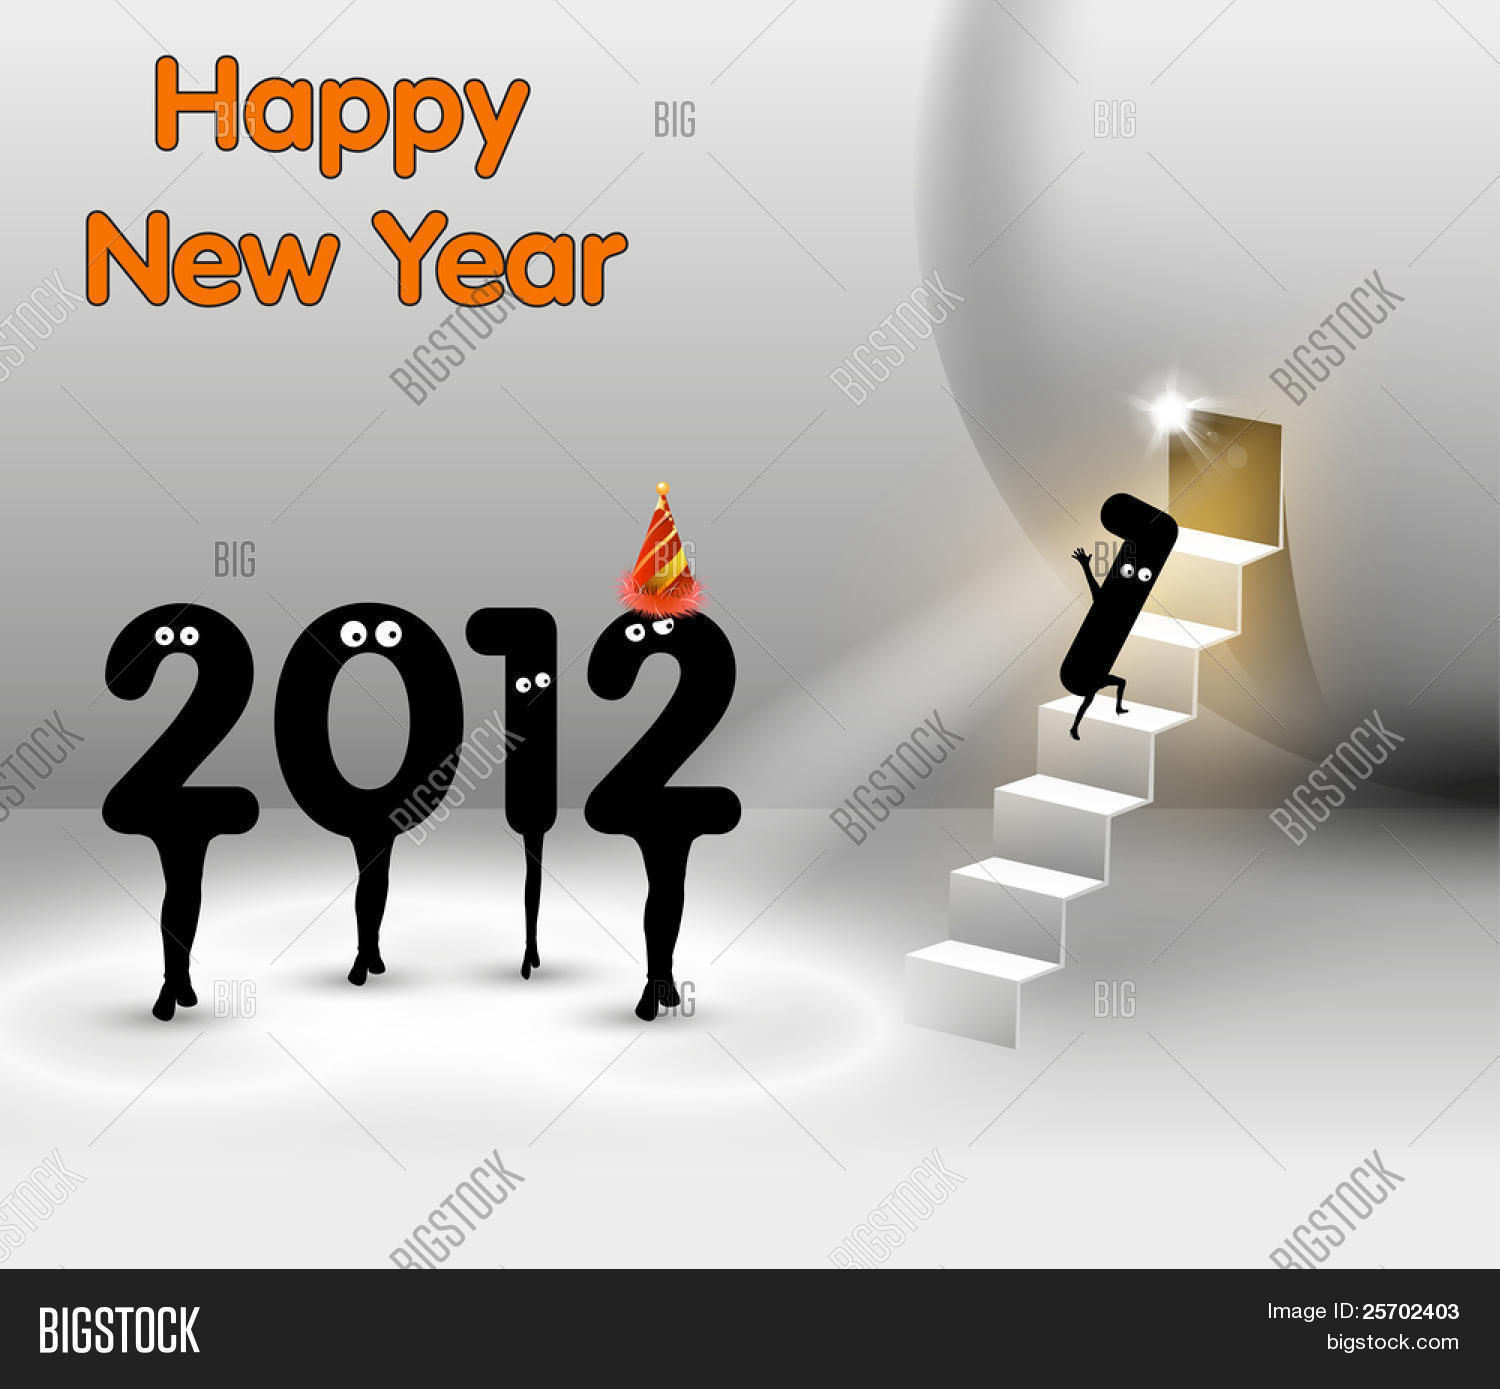 Funny New Year Card Vector Photo Free Trial Bigstock